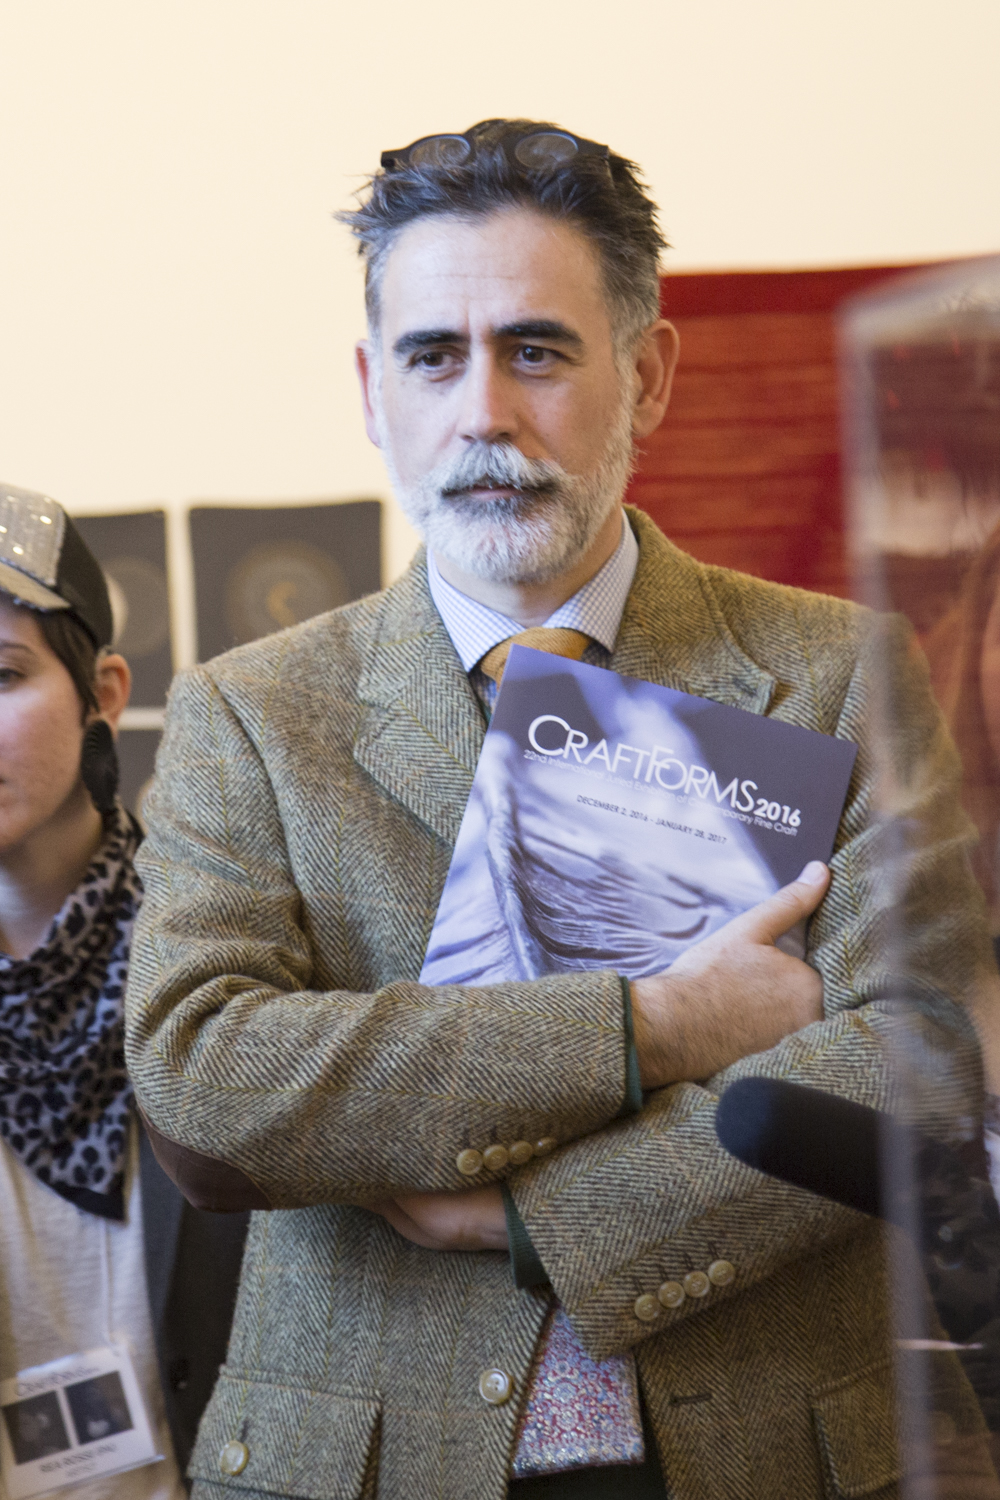 Stefano Catalani, Juror, holding the catalog for the show... wonderful surprise to see that my piece was on the cover!